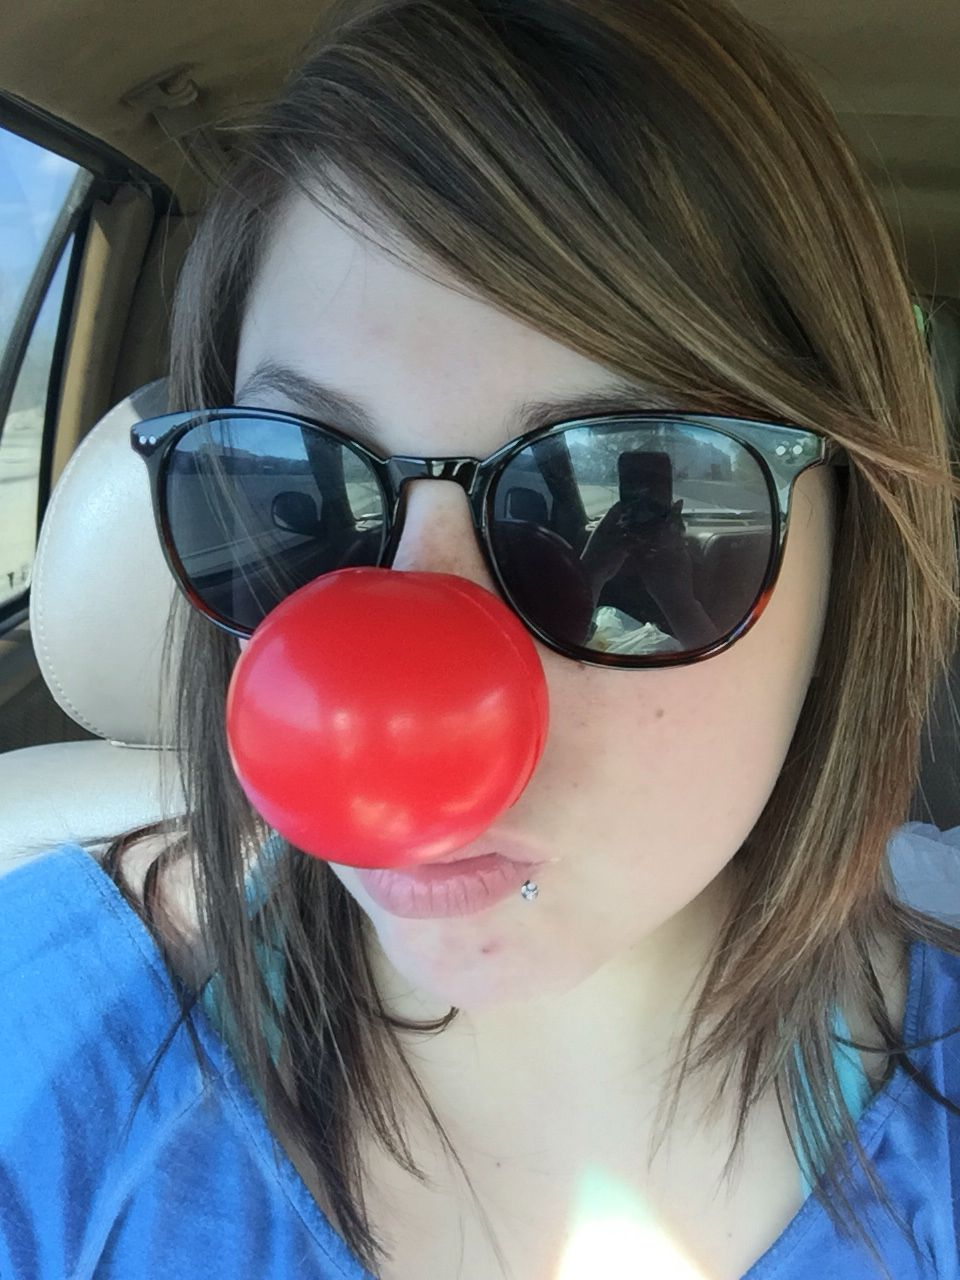 Donated to Ronald McDonald foundation at Walgreens. Received a clown nose, to add to my collection of noses.